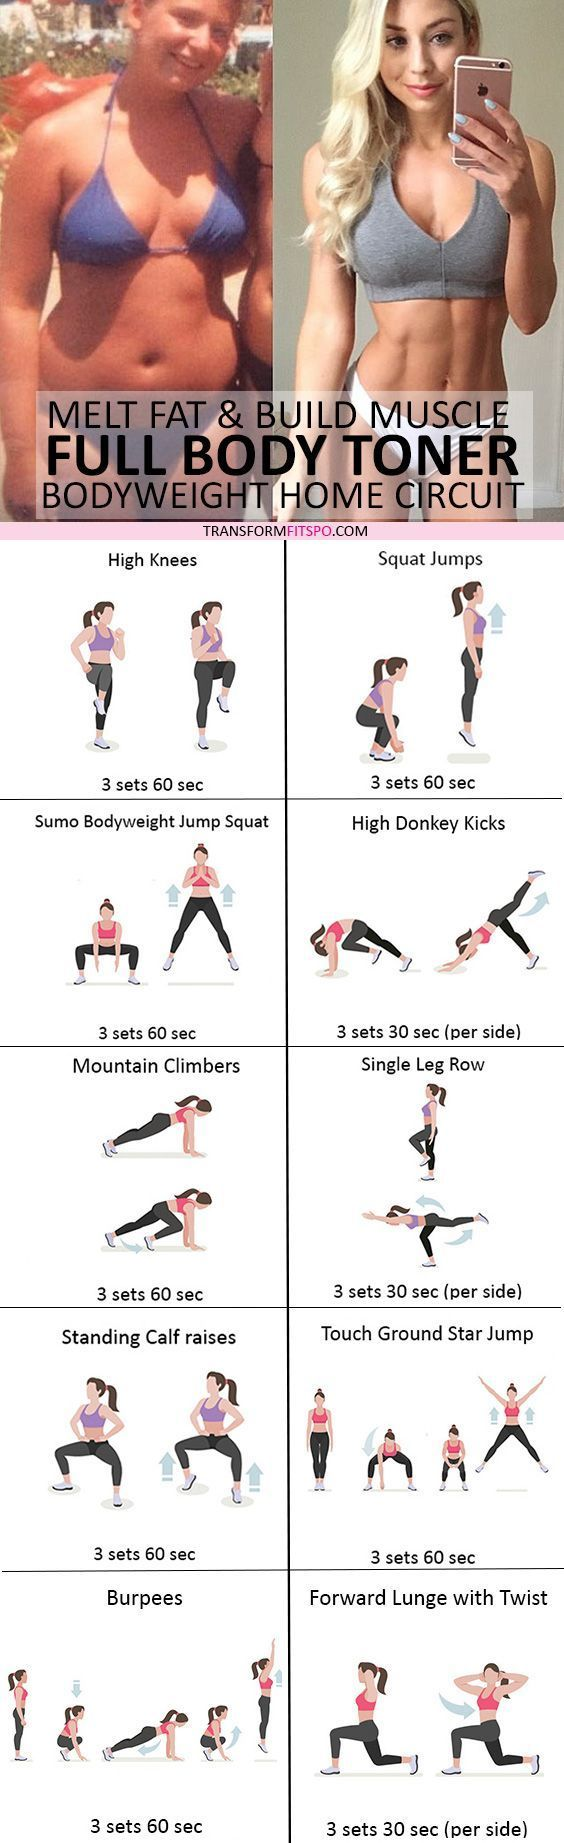 🏡 Full Body Tone and Strengthen: Bodyweight Home Workout to Melt Fat and Build Toned Muscle